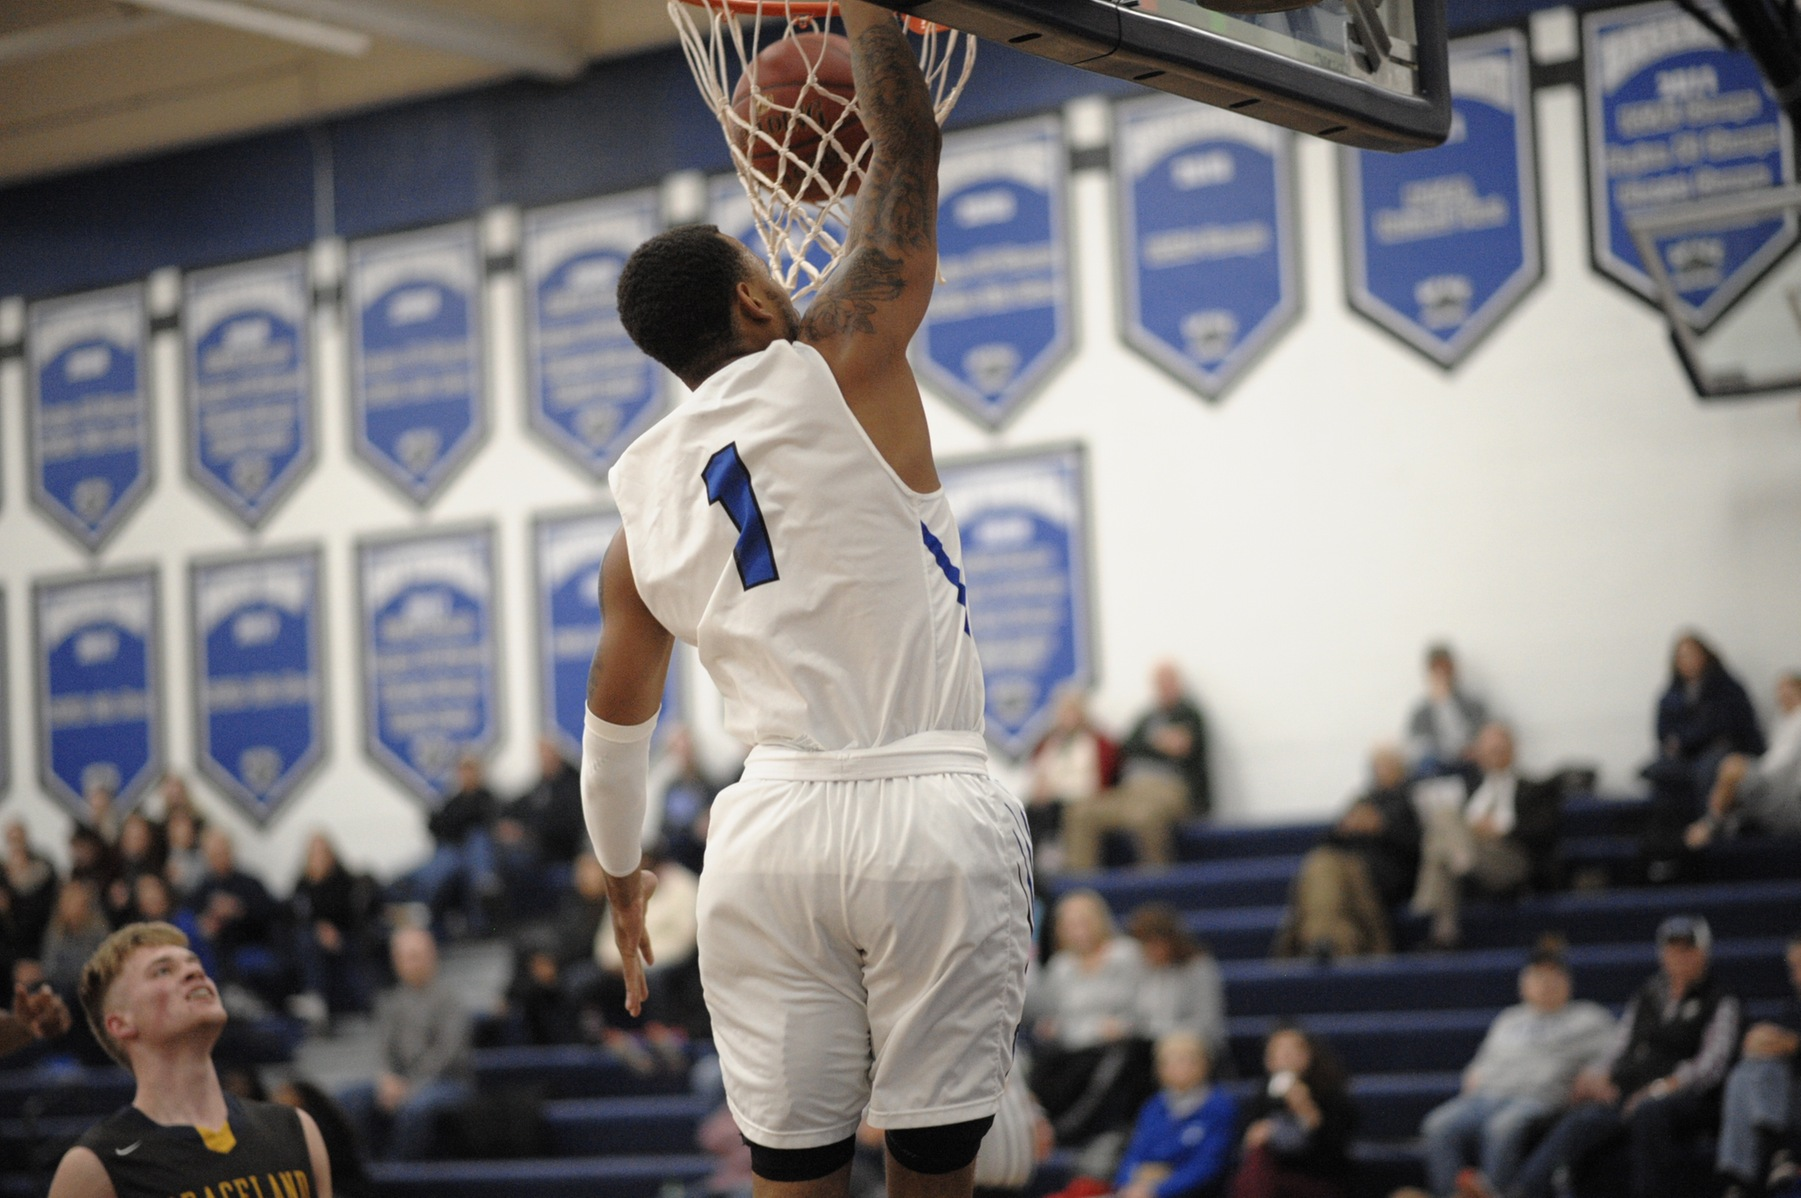 DMACC men's basketball team splits two games in Holiday Inn Reiver Classic